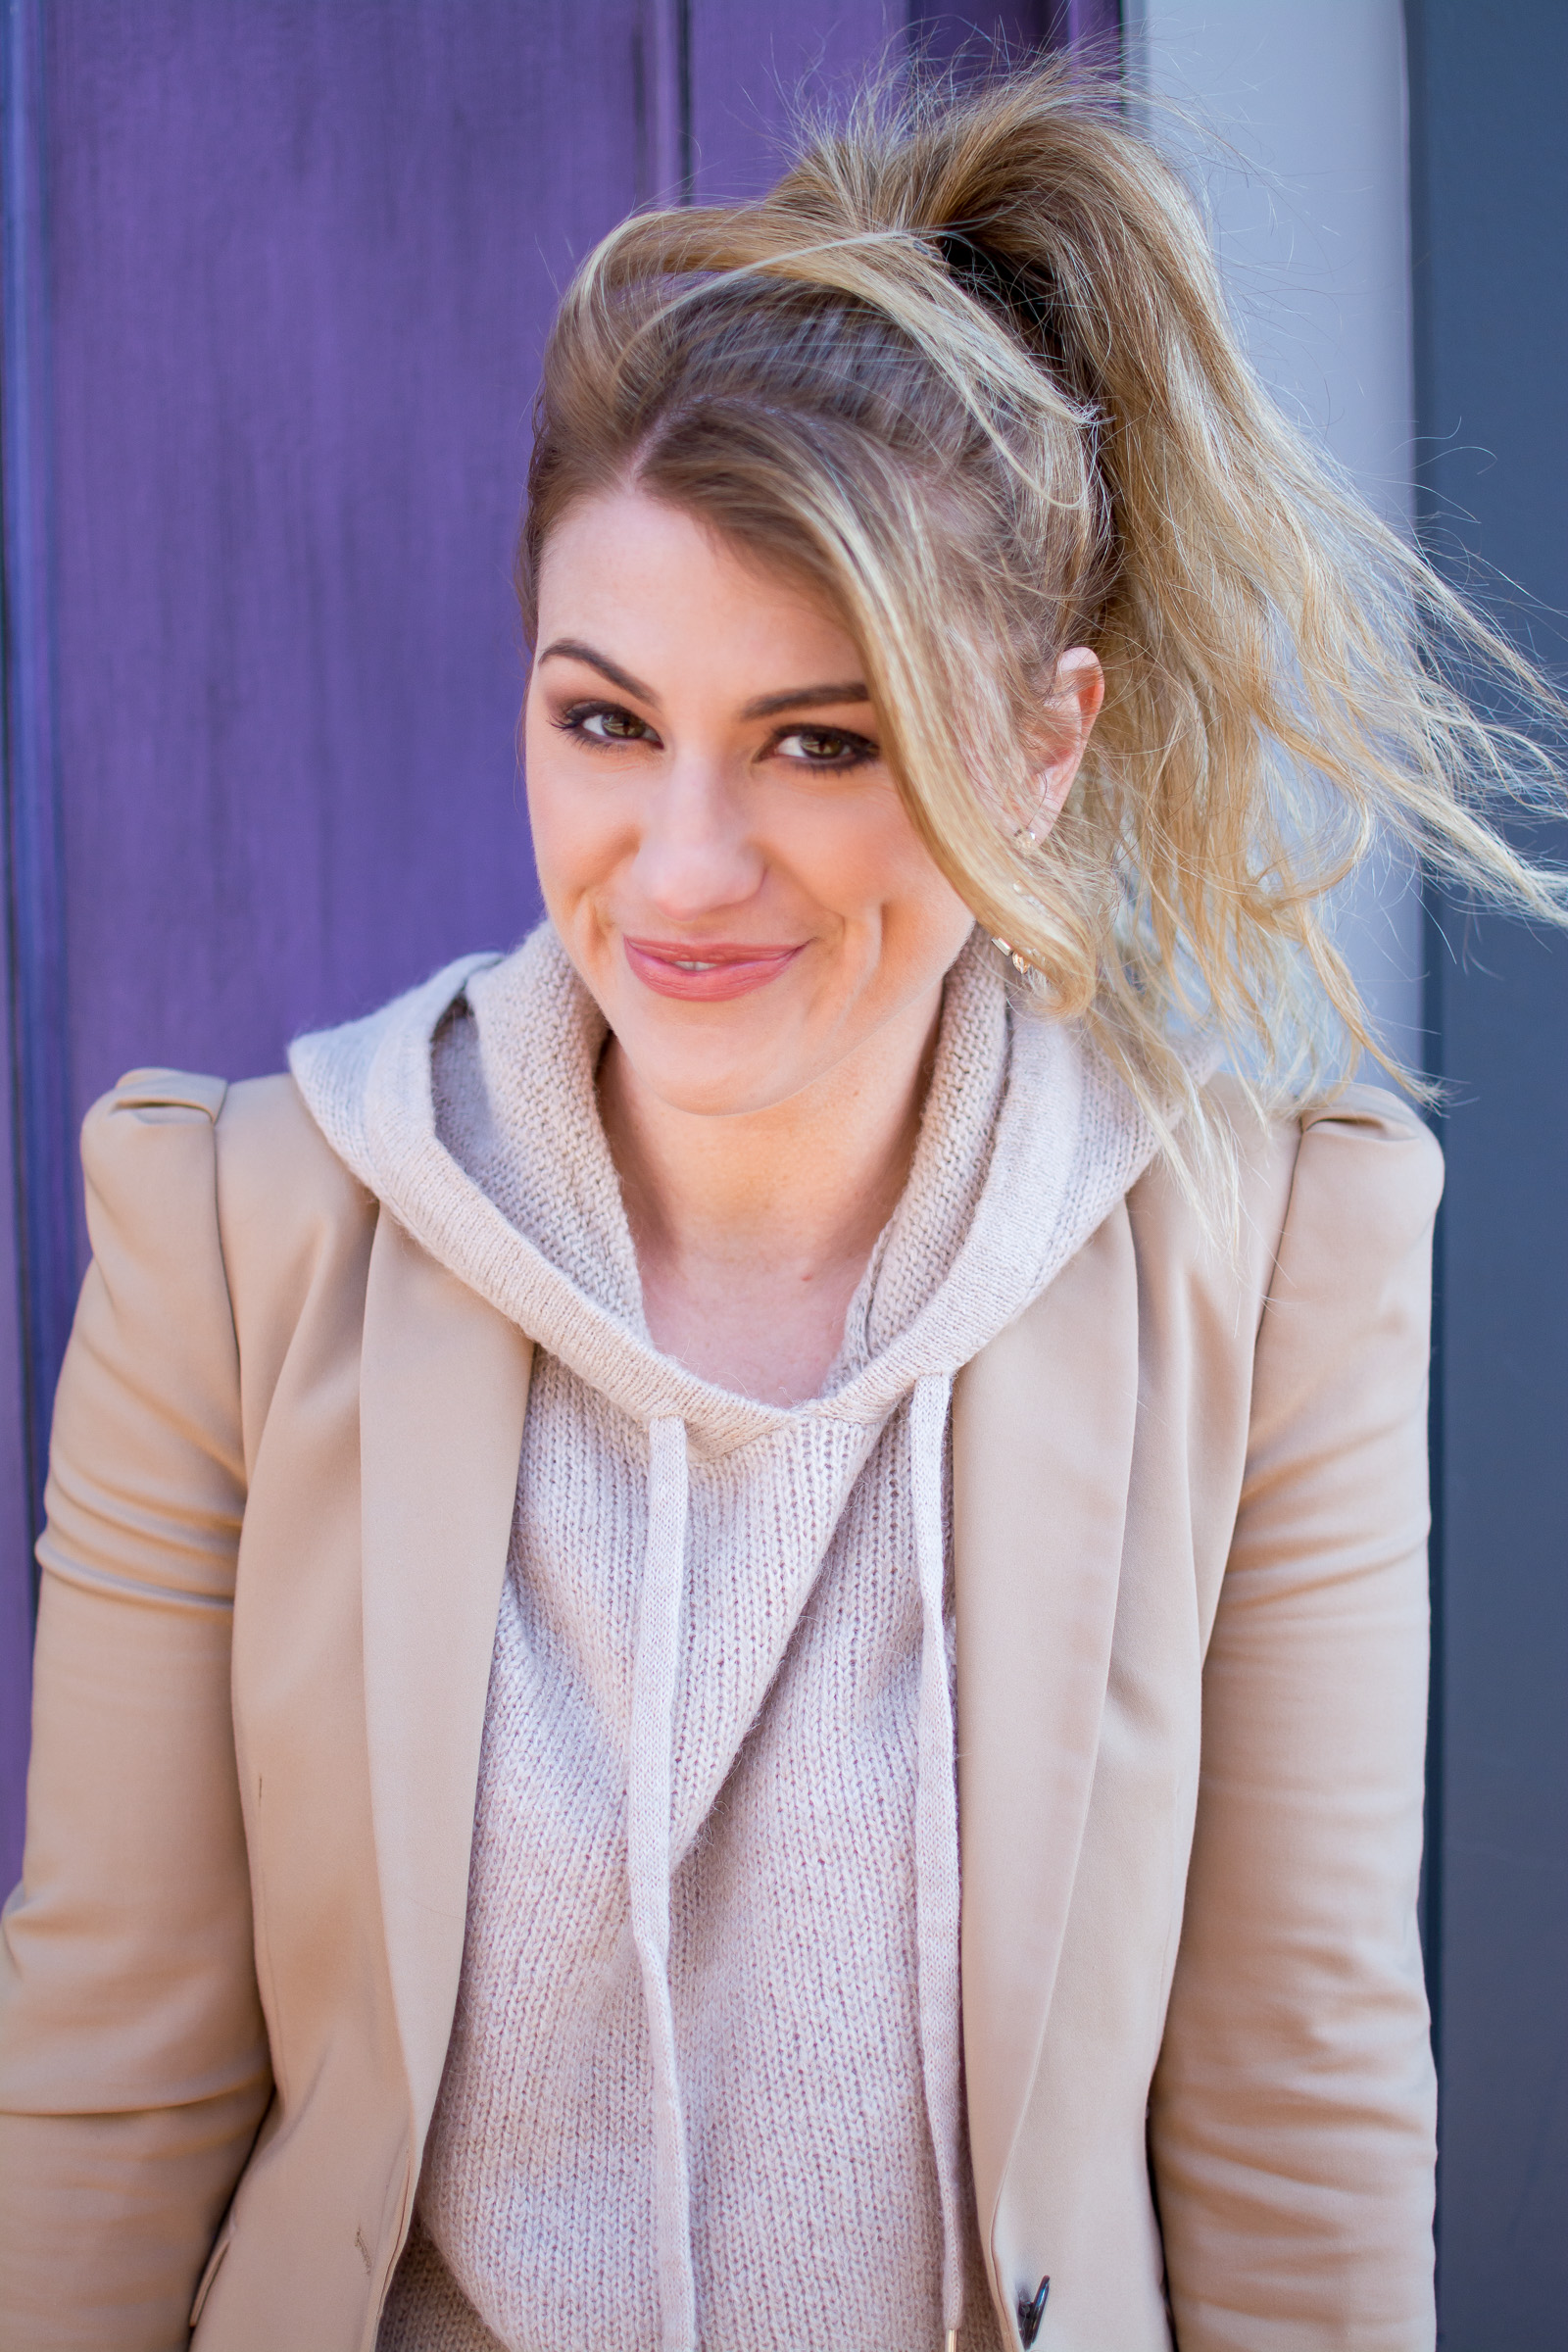 Ashley from LSR in a camel blazer and blush hoodie